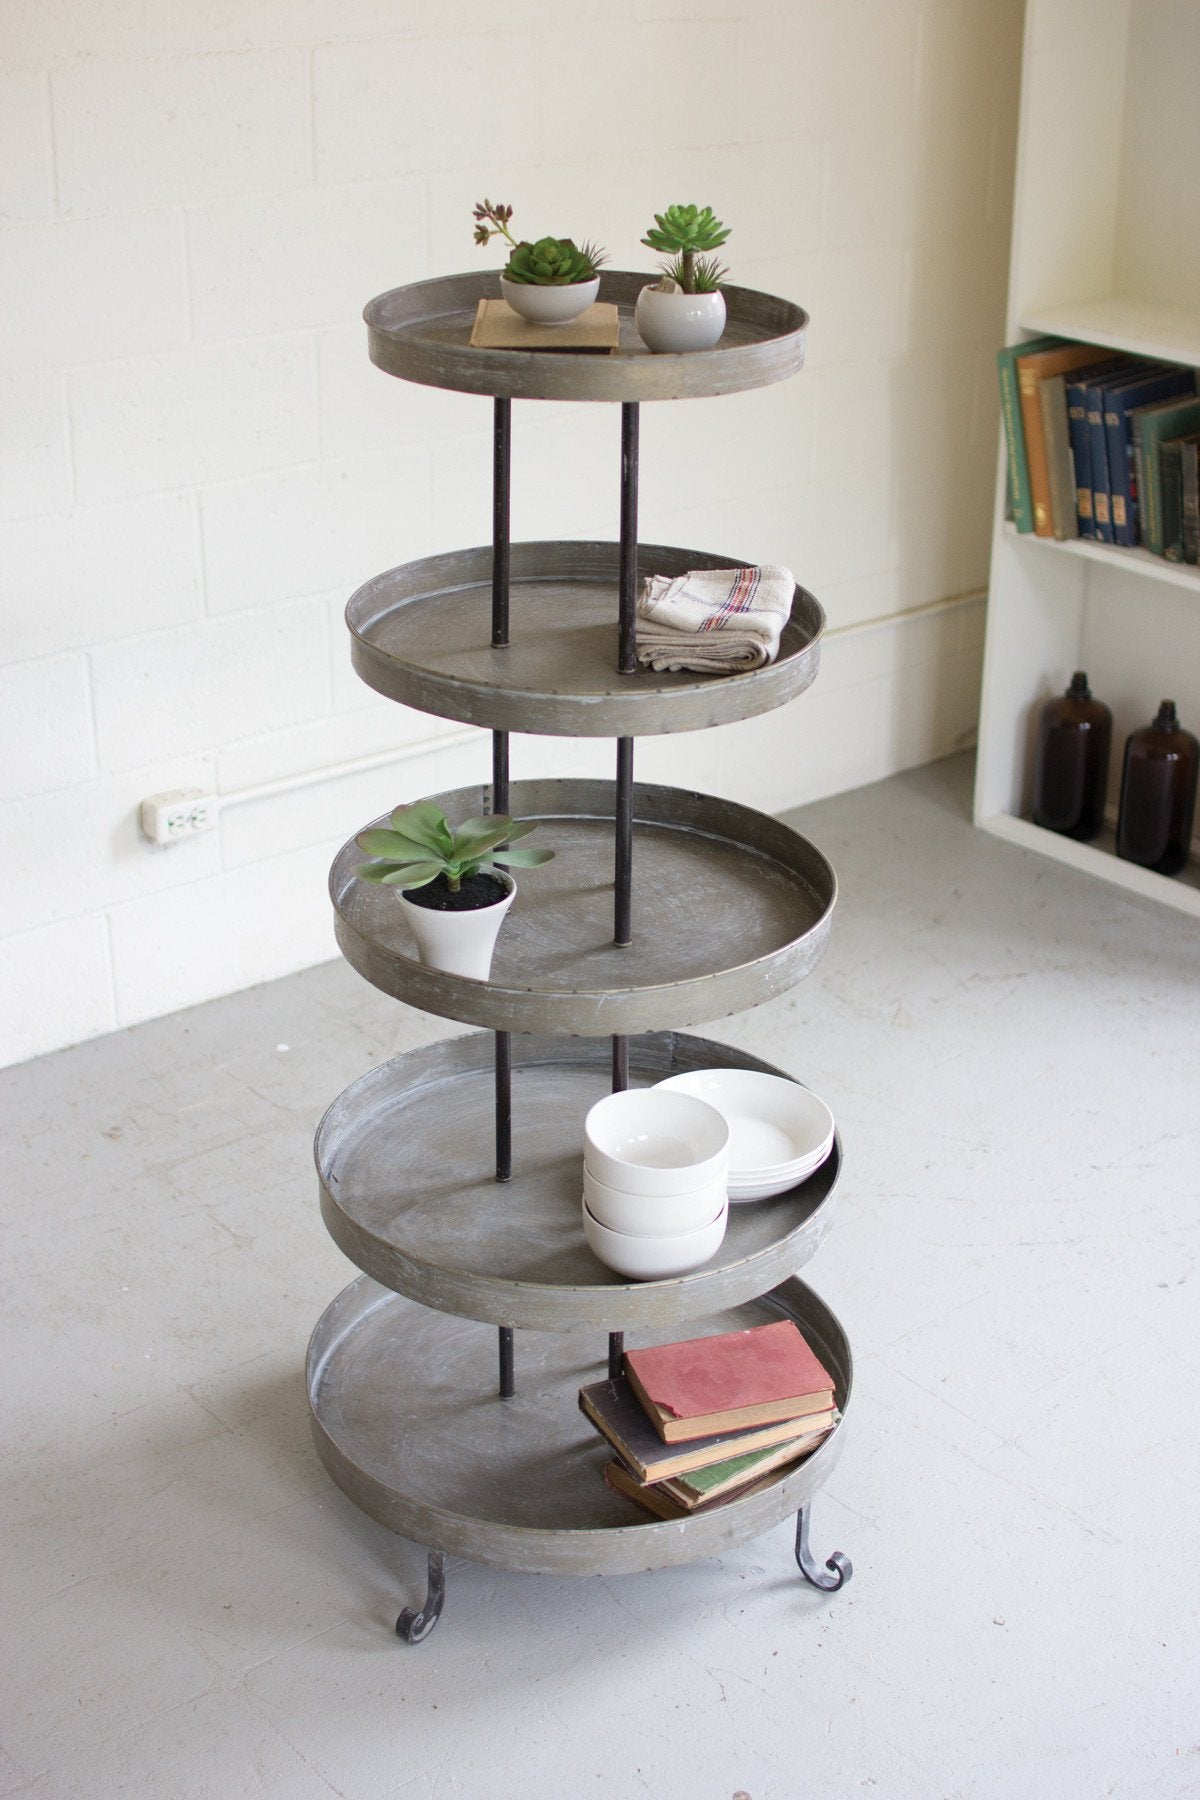 Kalalou Five Tiered Round Metal Display Tower